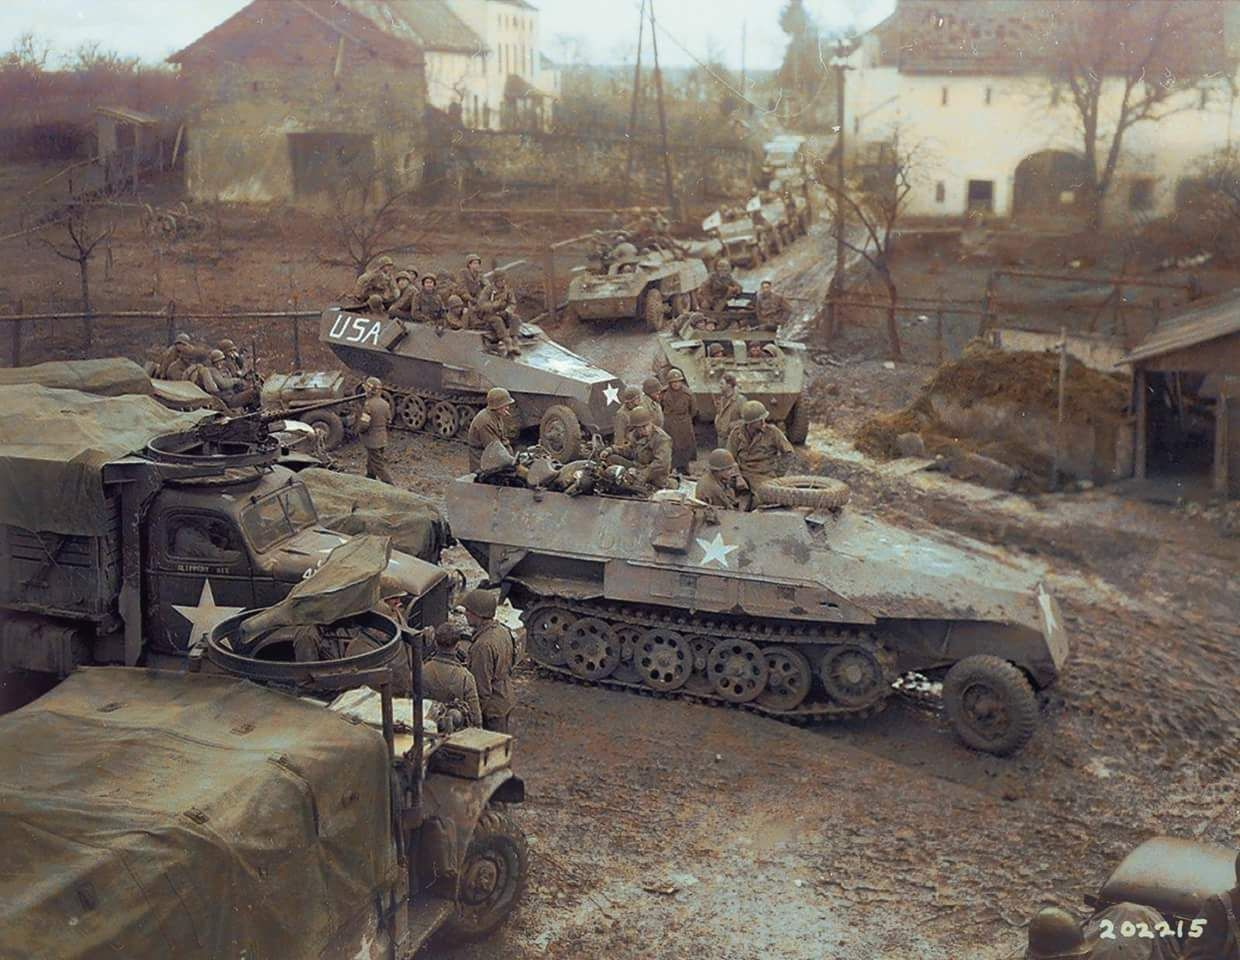 Dodge trucks in wwii - Two Captured German Armored Half Tracks Sch Tzenpanzerwagen Sd Join A Mechanized Column Of Armored Dodge Trucks And Greyhounds Of The Battalion